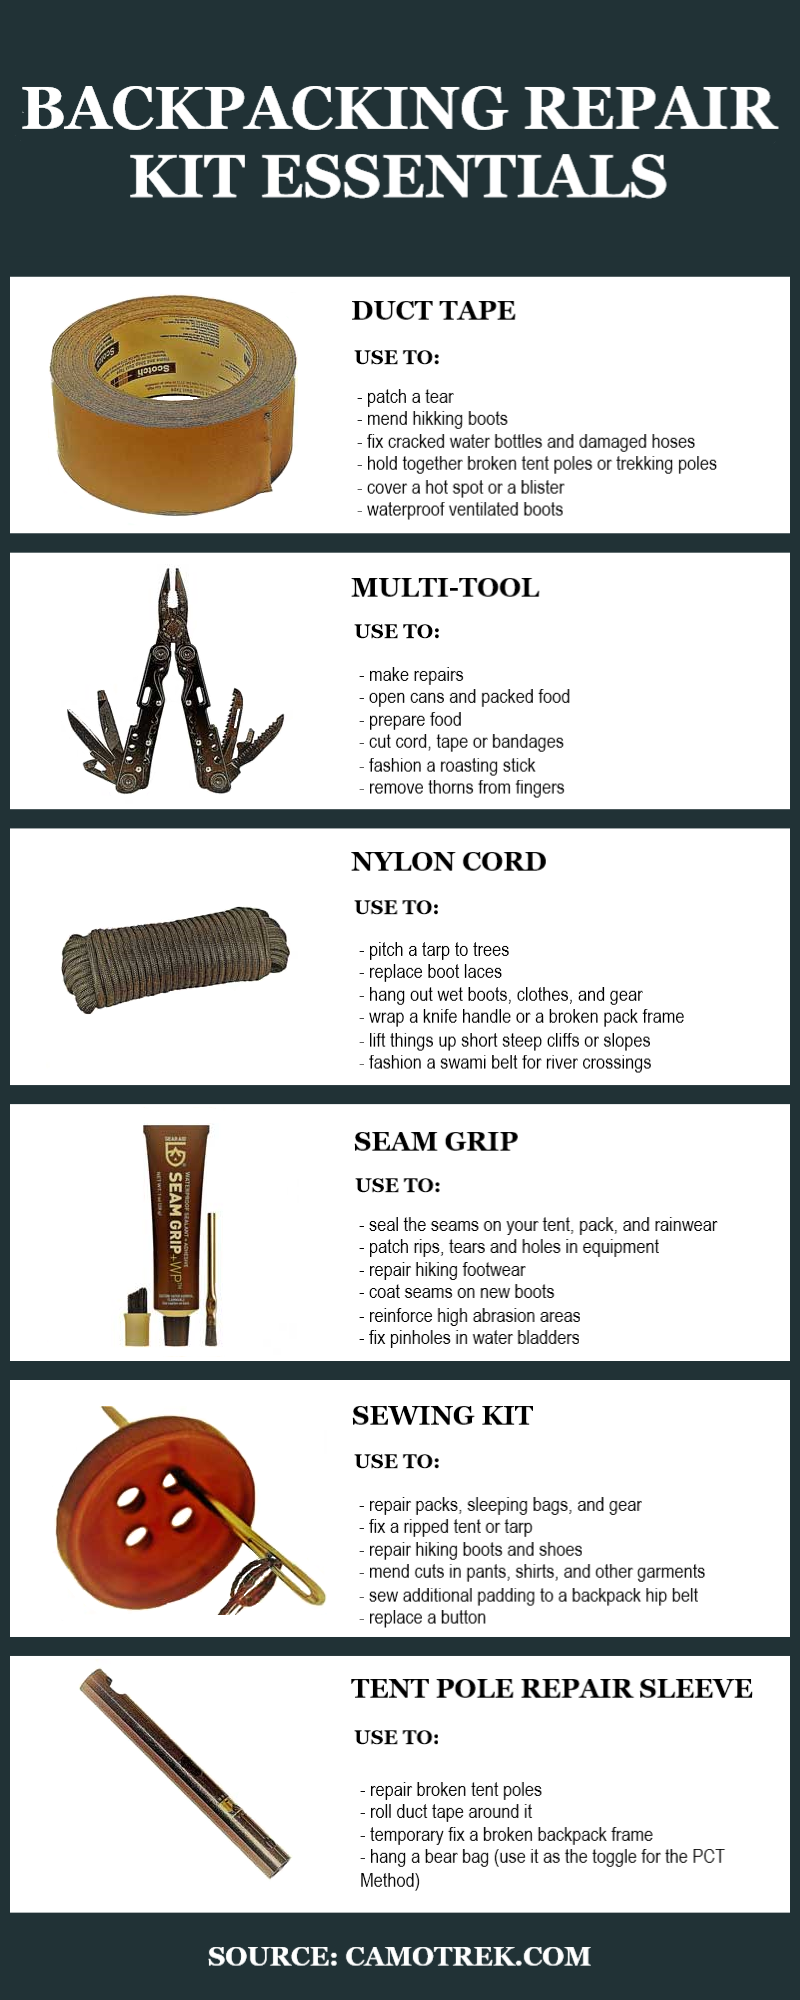 What Should You Have in Your Backpacking Repair Kit? | Blog | Camotrek